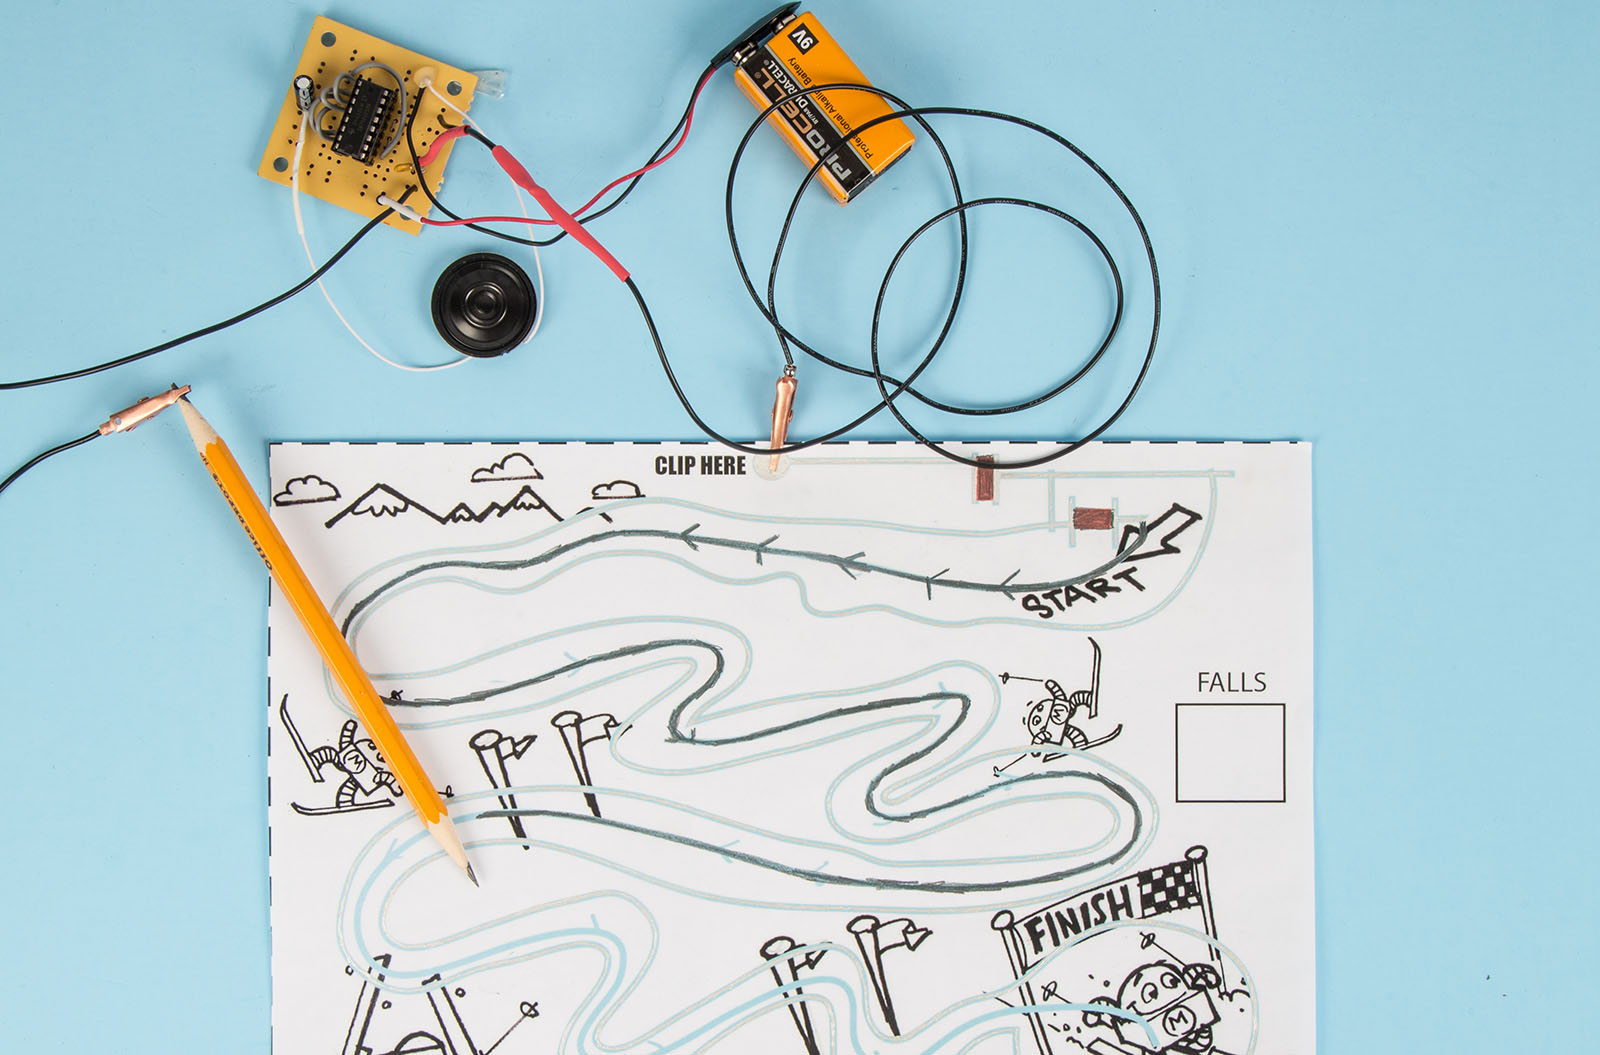 Build An Electronic Audio Game With A Pencil Paper And Conductive Melody Maker Wiring Diagram Ink Make